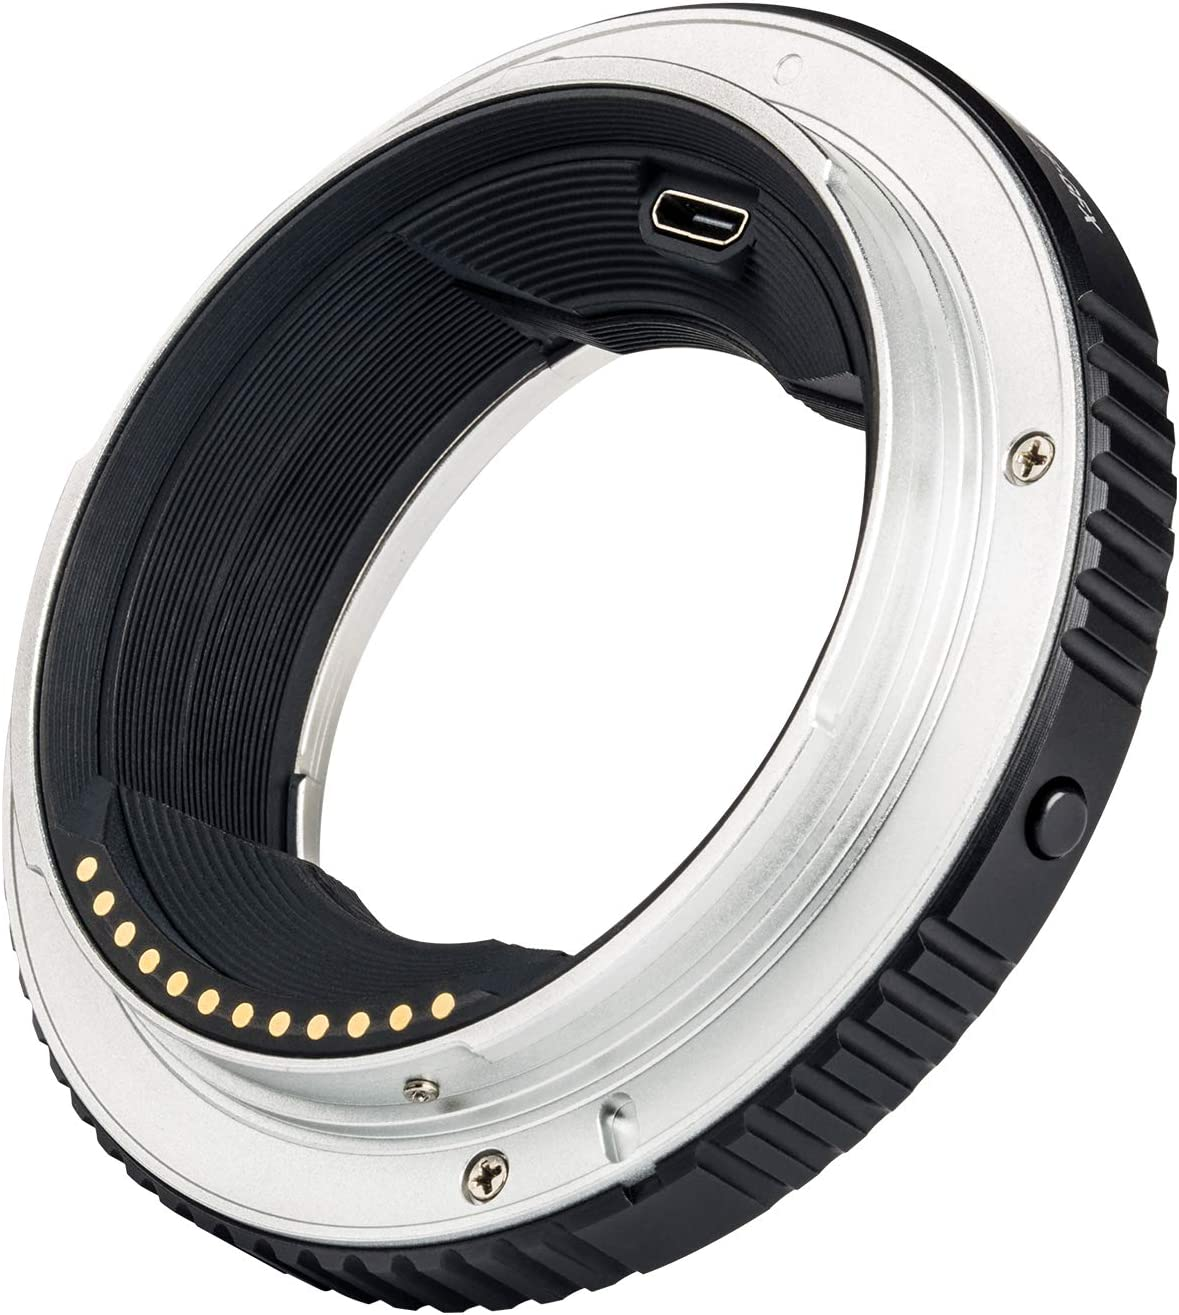 Auto Focus Lens Mount Adapter for Canon EF Mount Lens to Canon EOS-M Mirrorless Camera M2 M3 M5 M6 M10 M50 M100 EF-M Mount